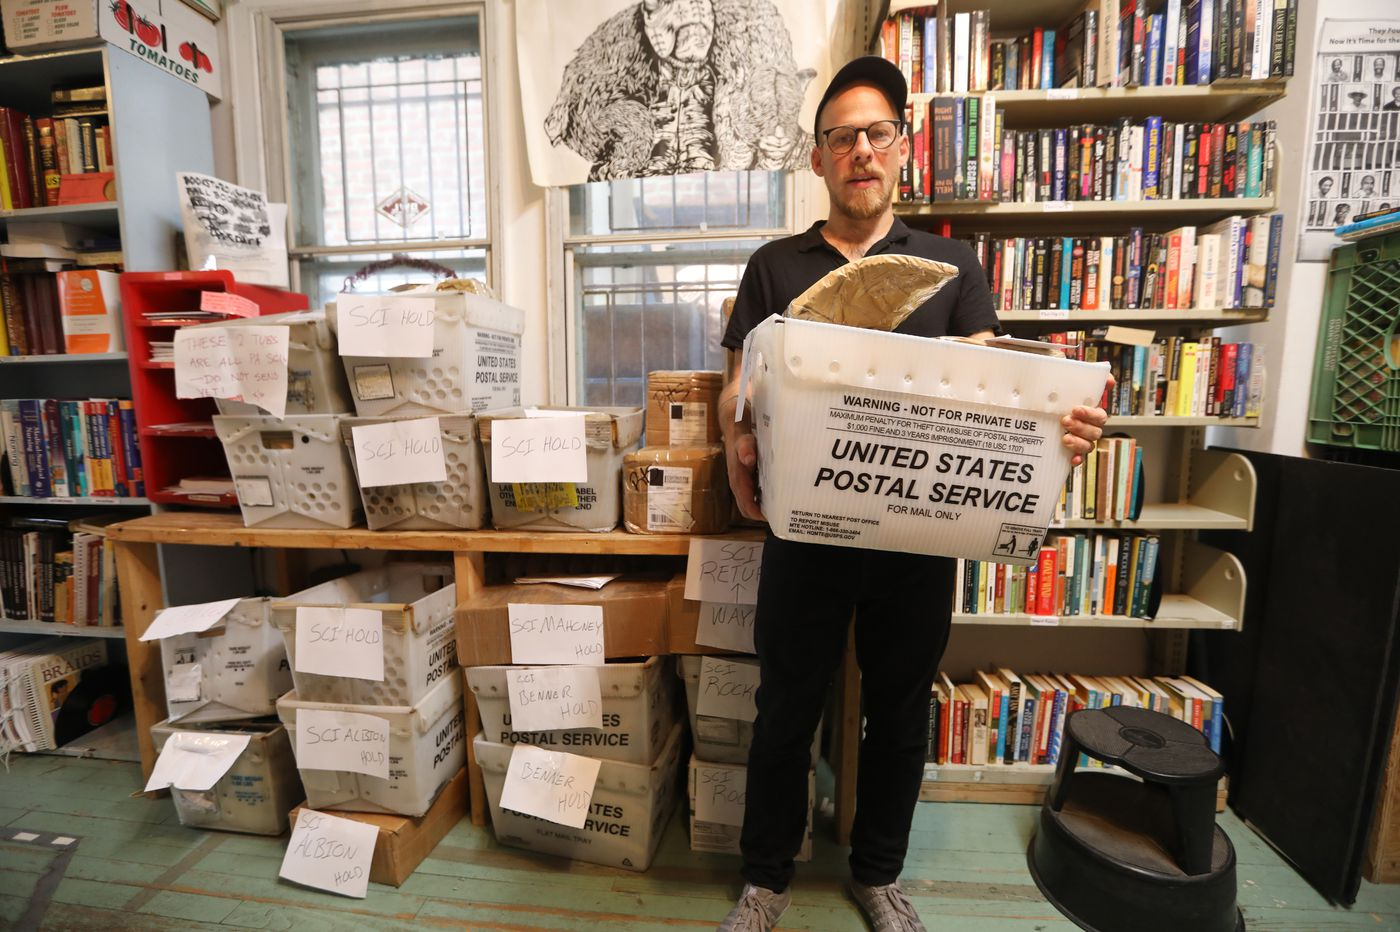 Pa. prison books and mail policies draw protests, petitions, and possible legal challenges